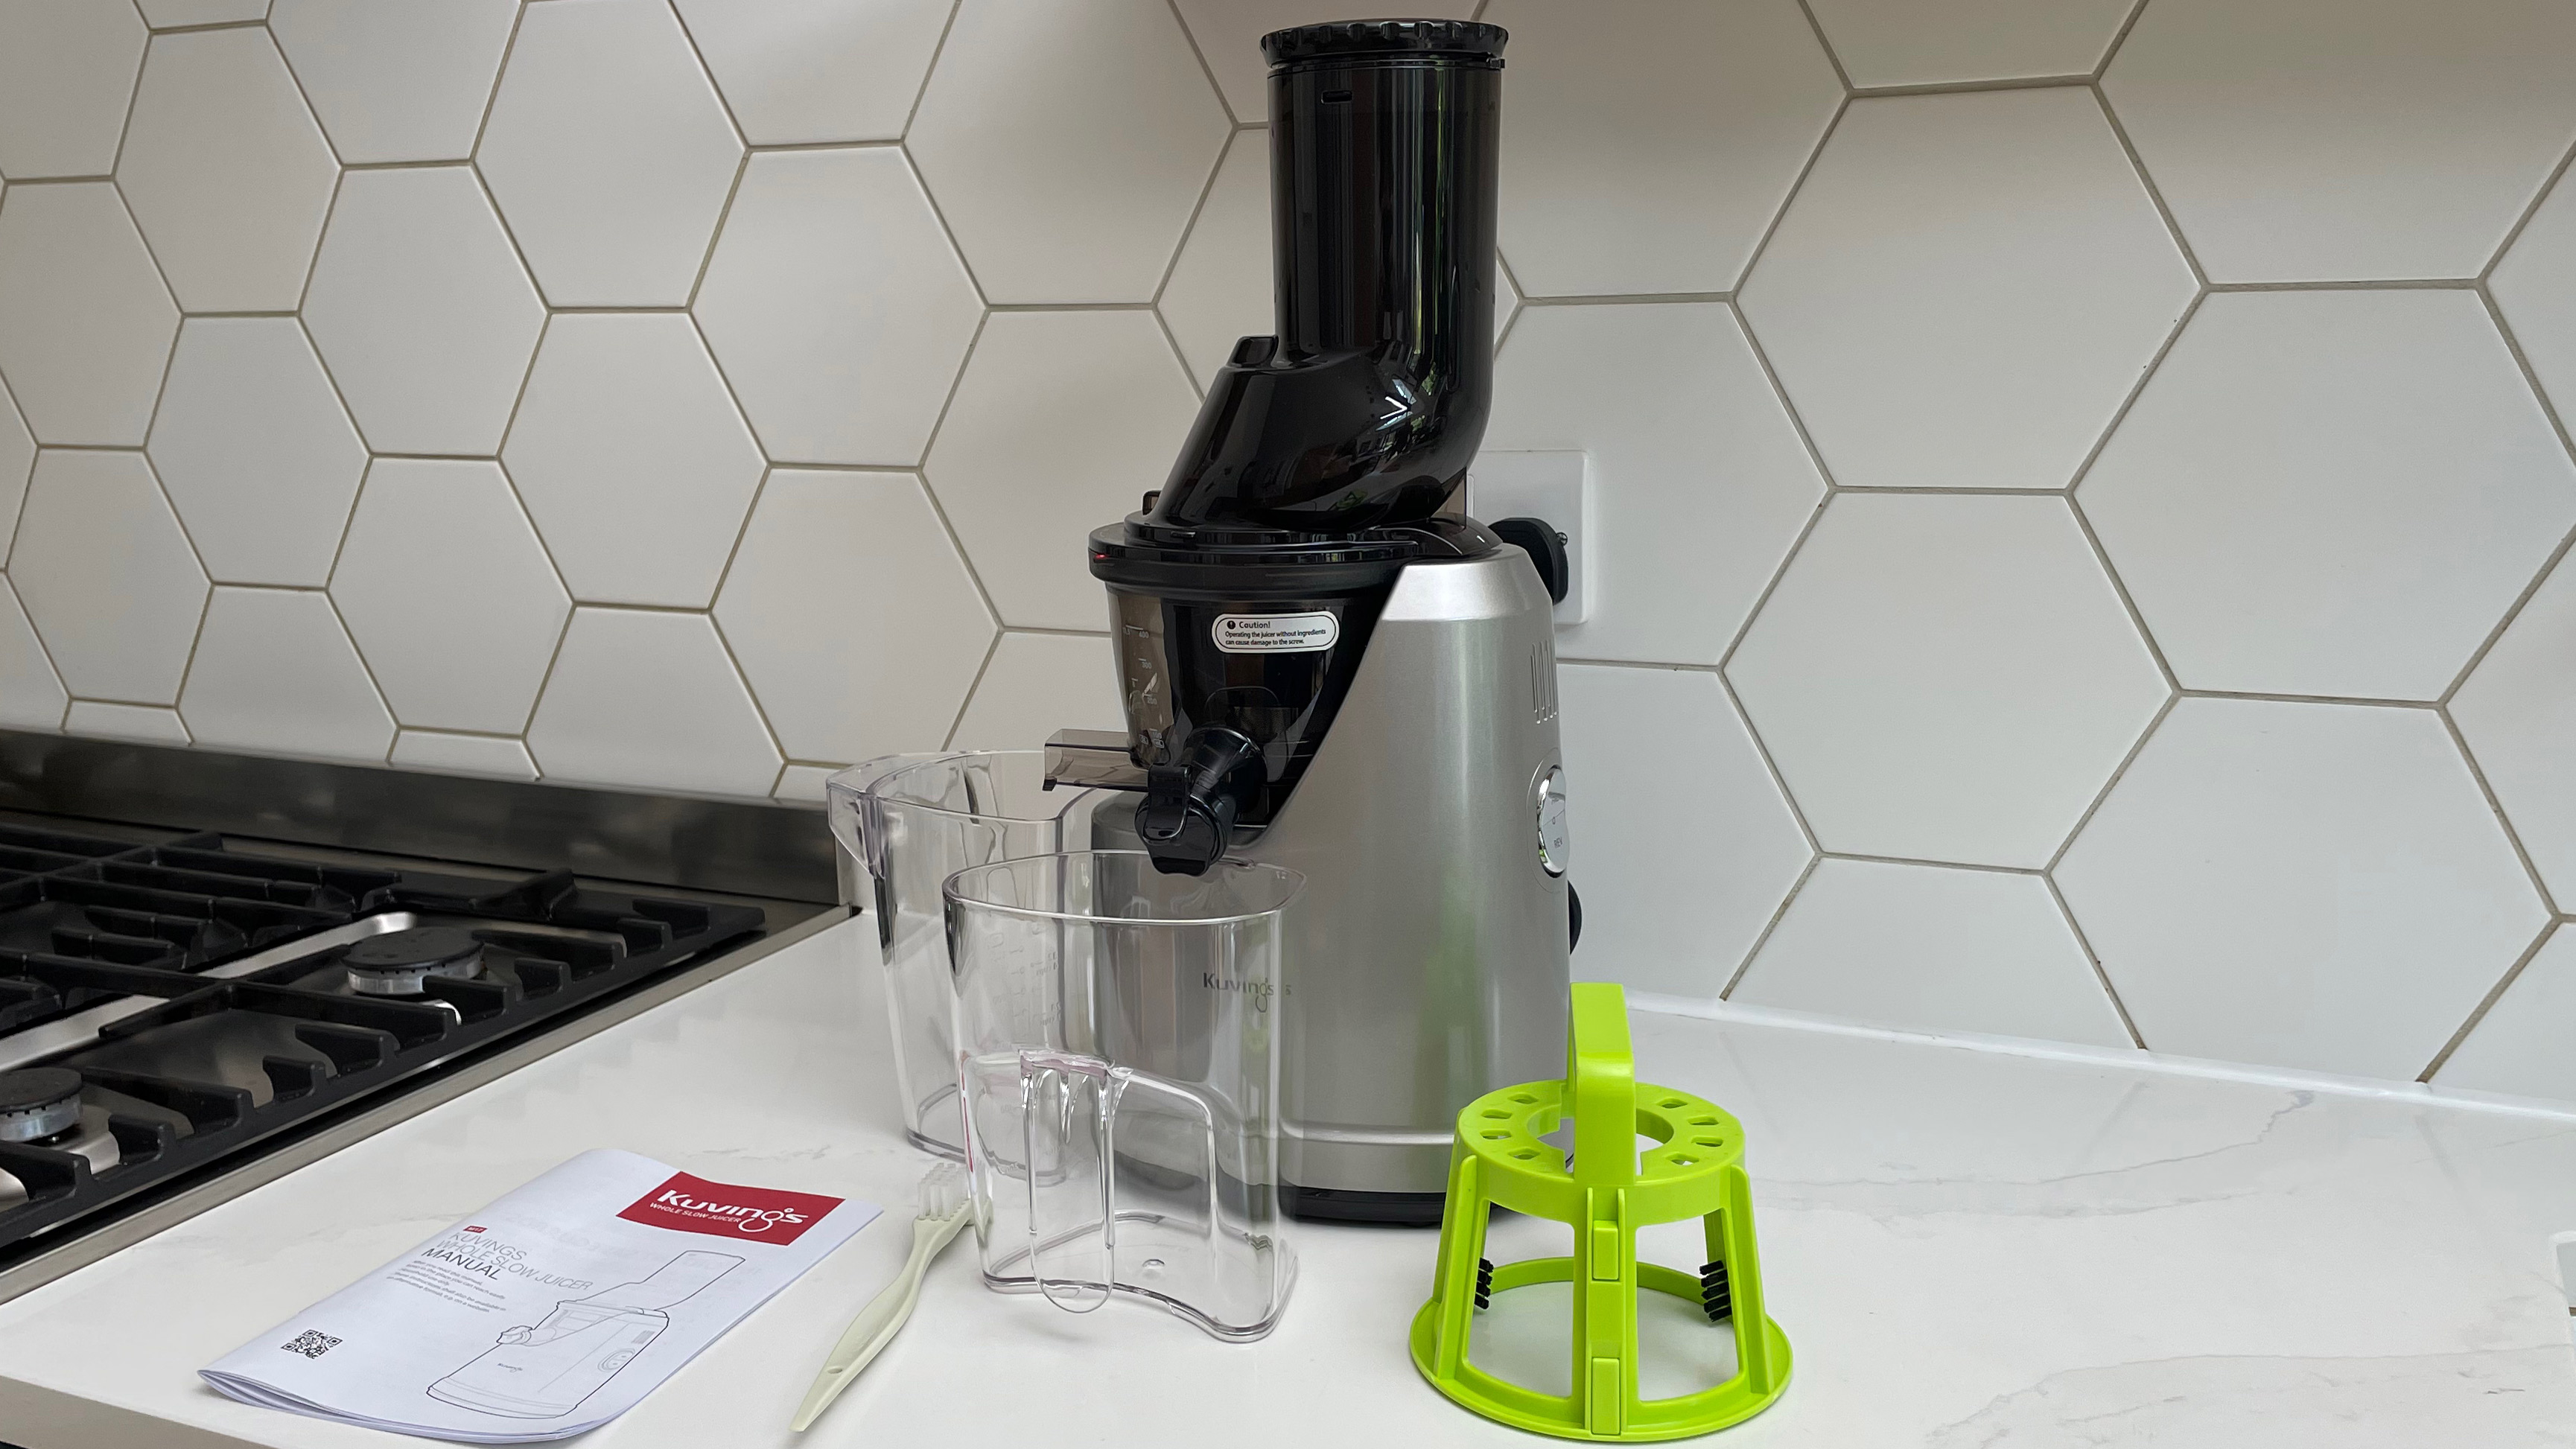 Kuvings B1700 and its accessories on a kitchen countertop